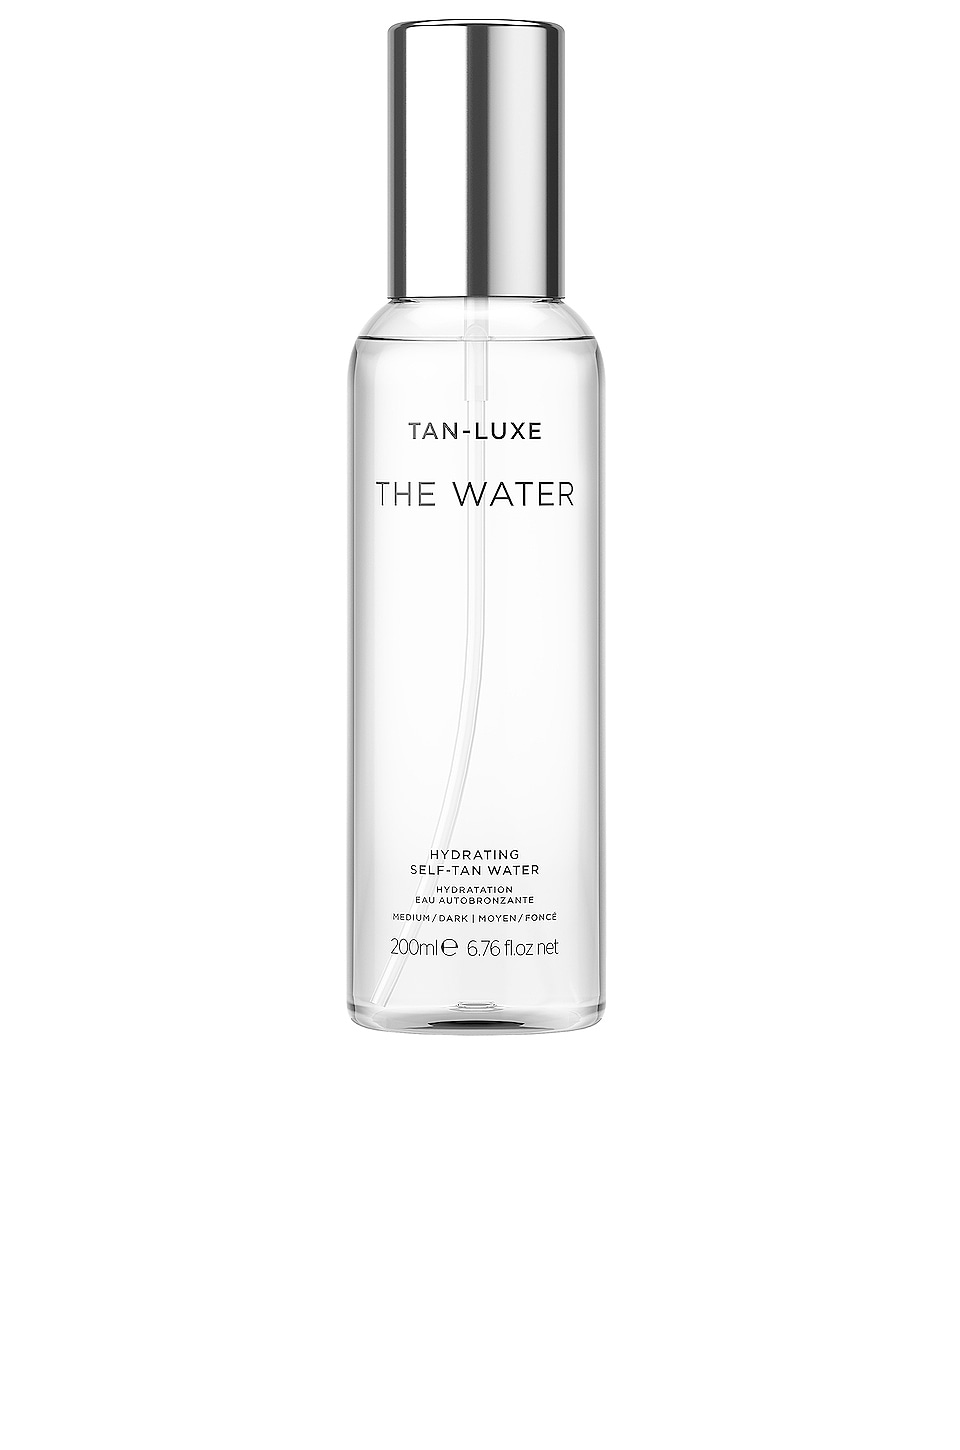 Tan Luxe The Water Hydrating Self-Tan Water in Medium / Dark